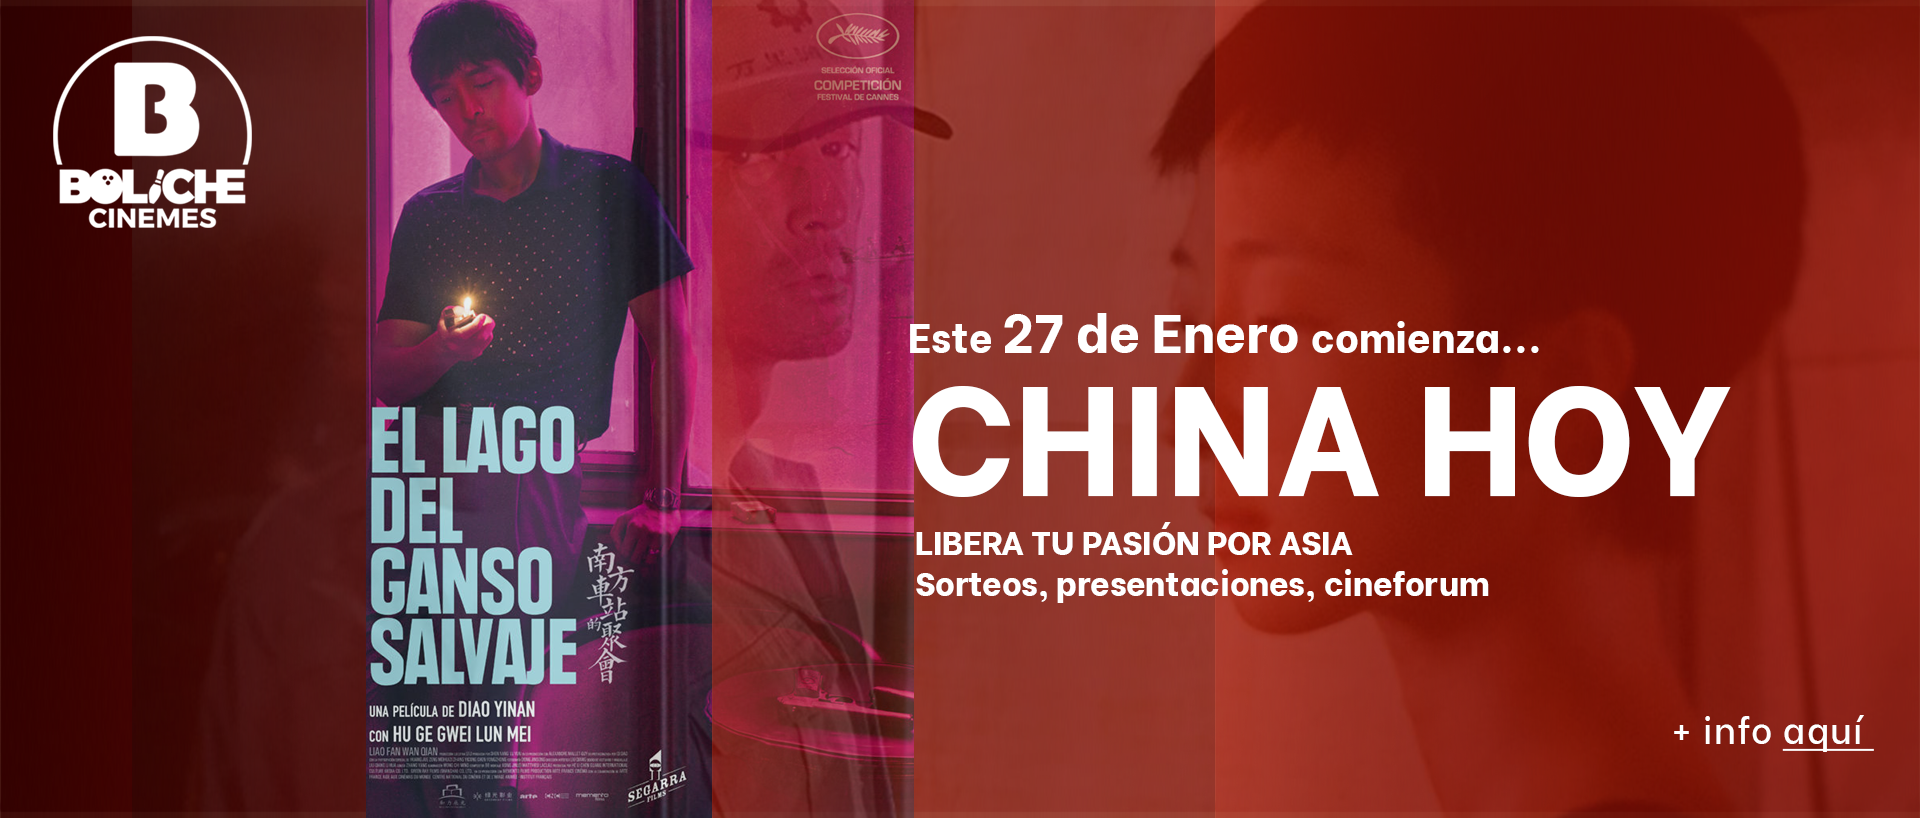 Promo-ciclo-china.png